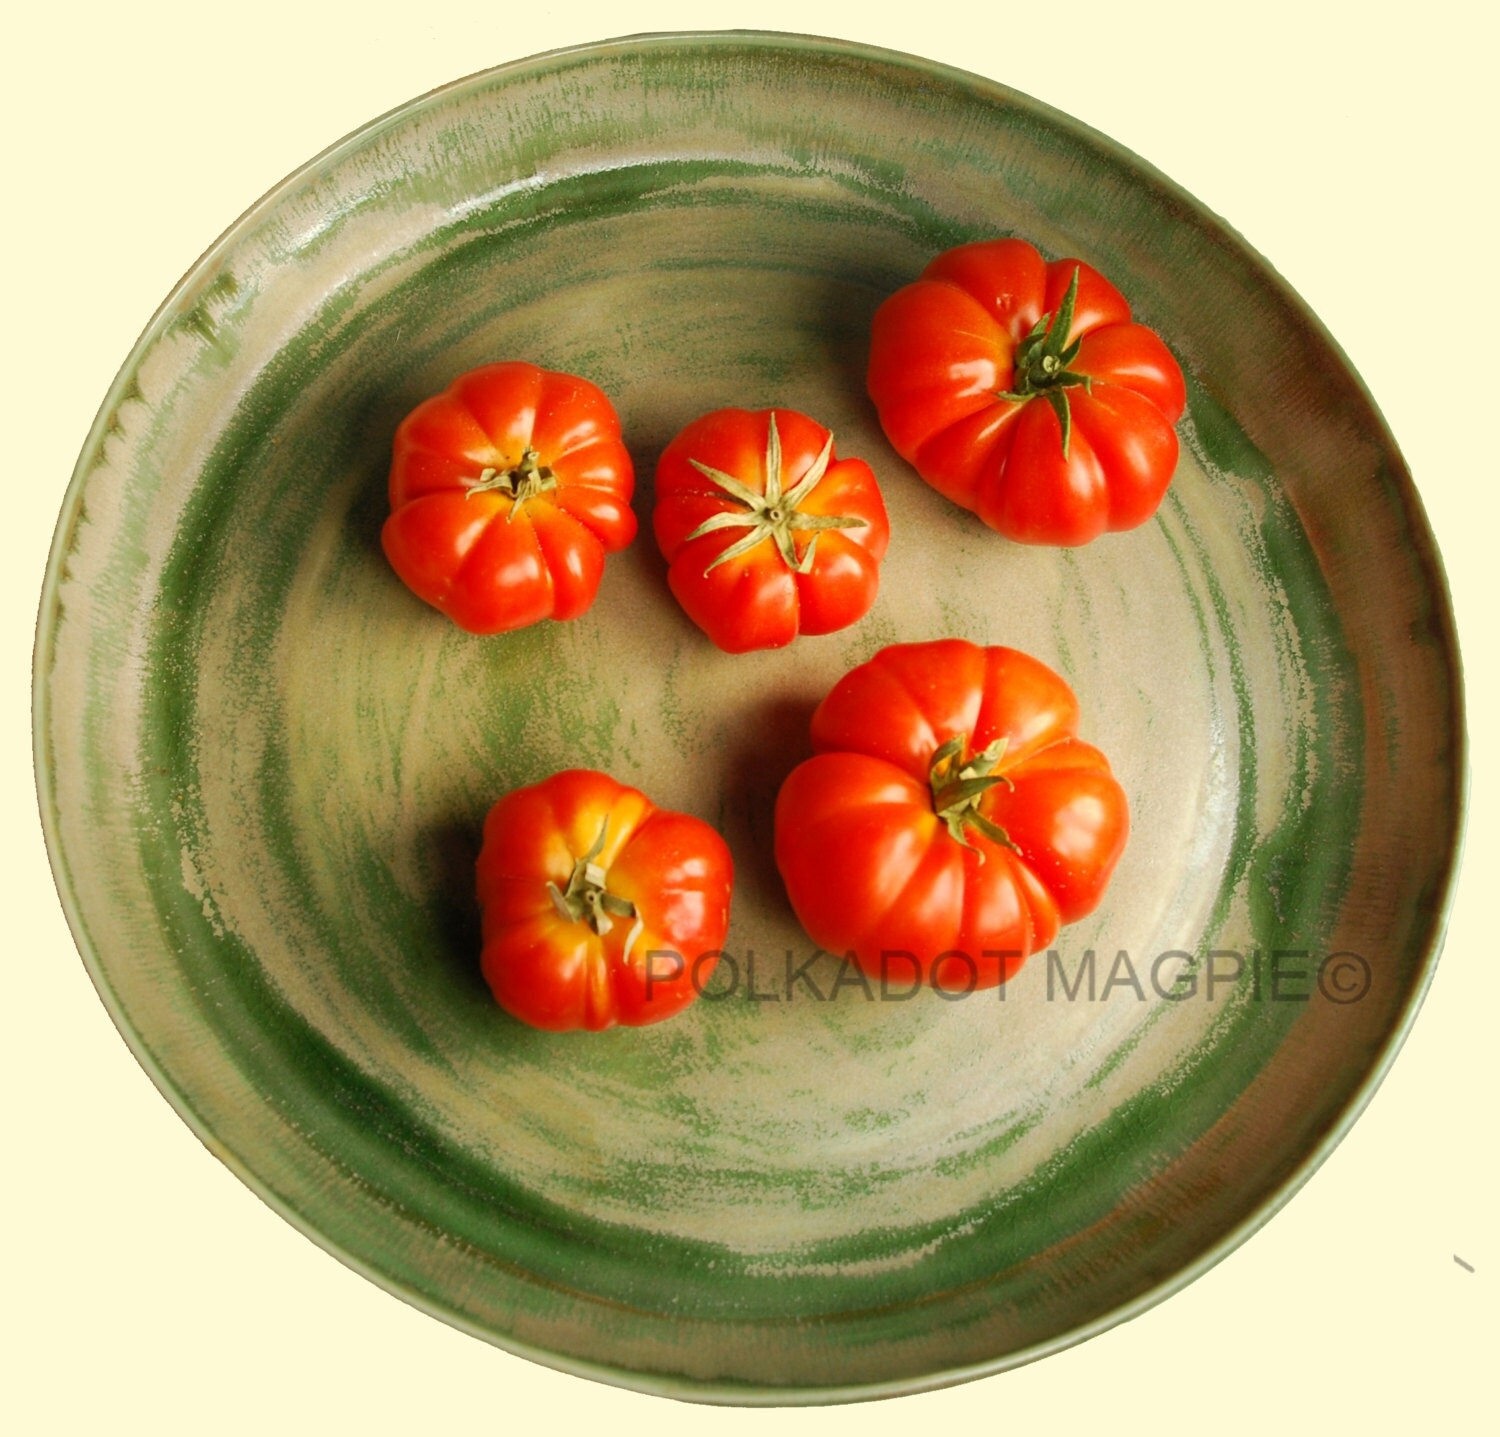 Italian Tomato Red Chefs Kitchen Photograph - SamieSam